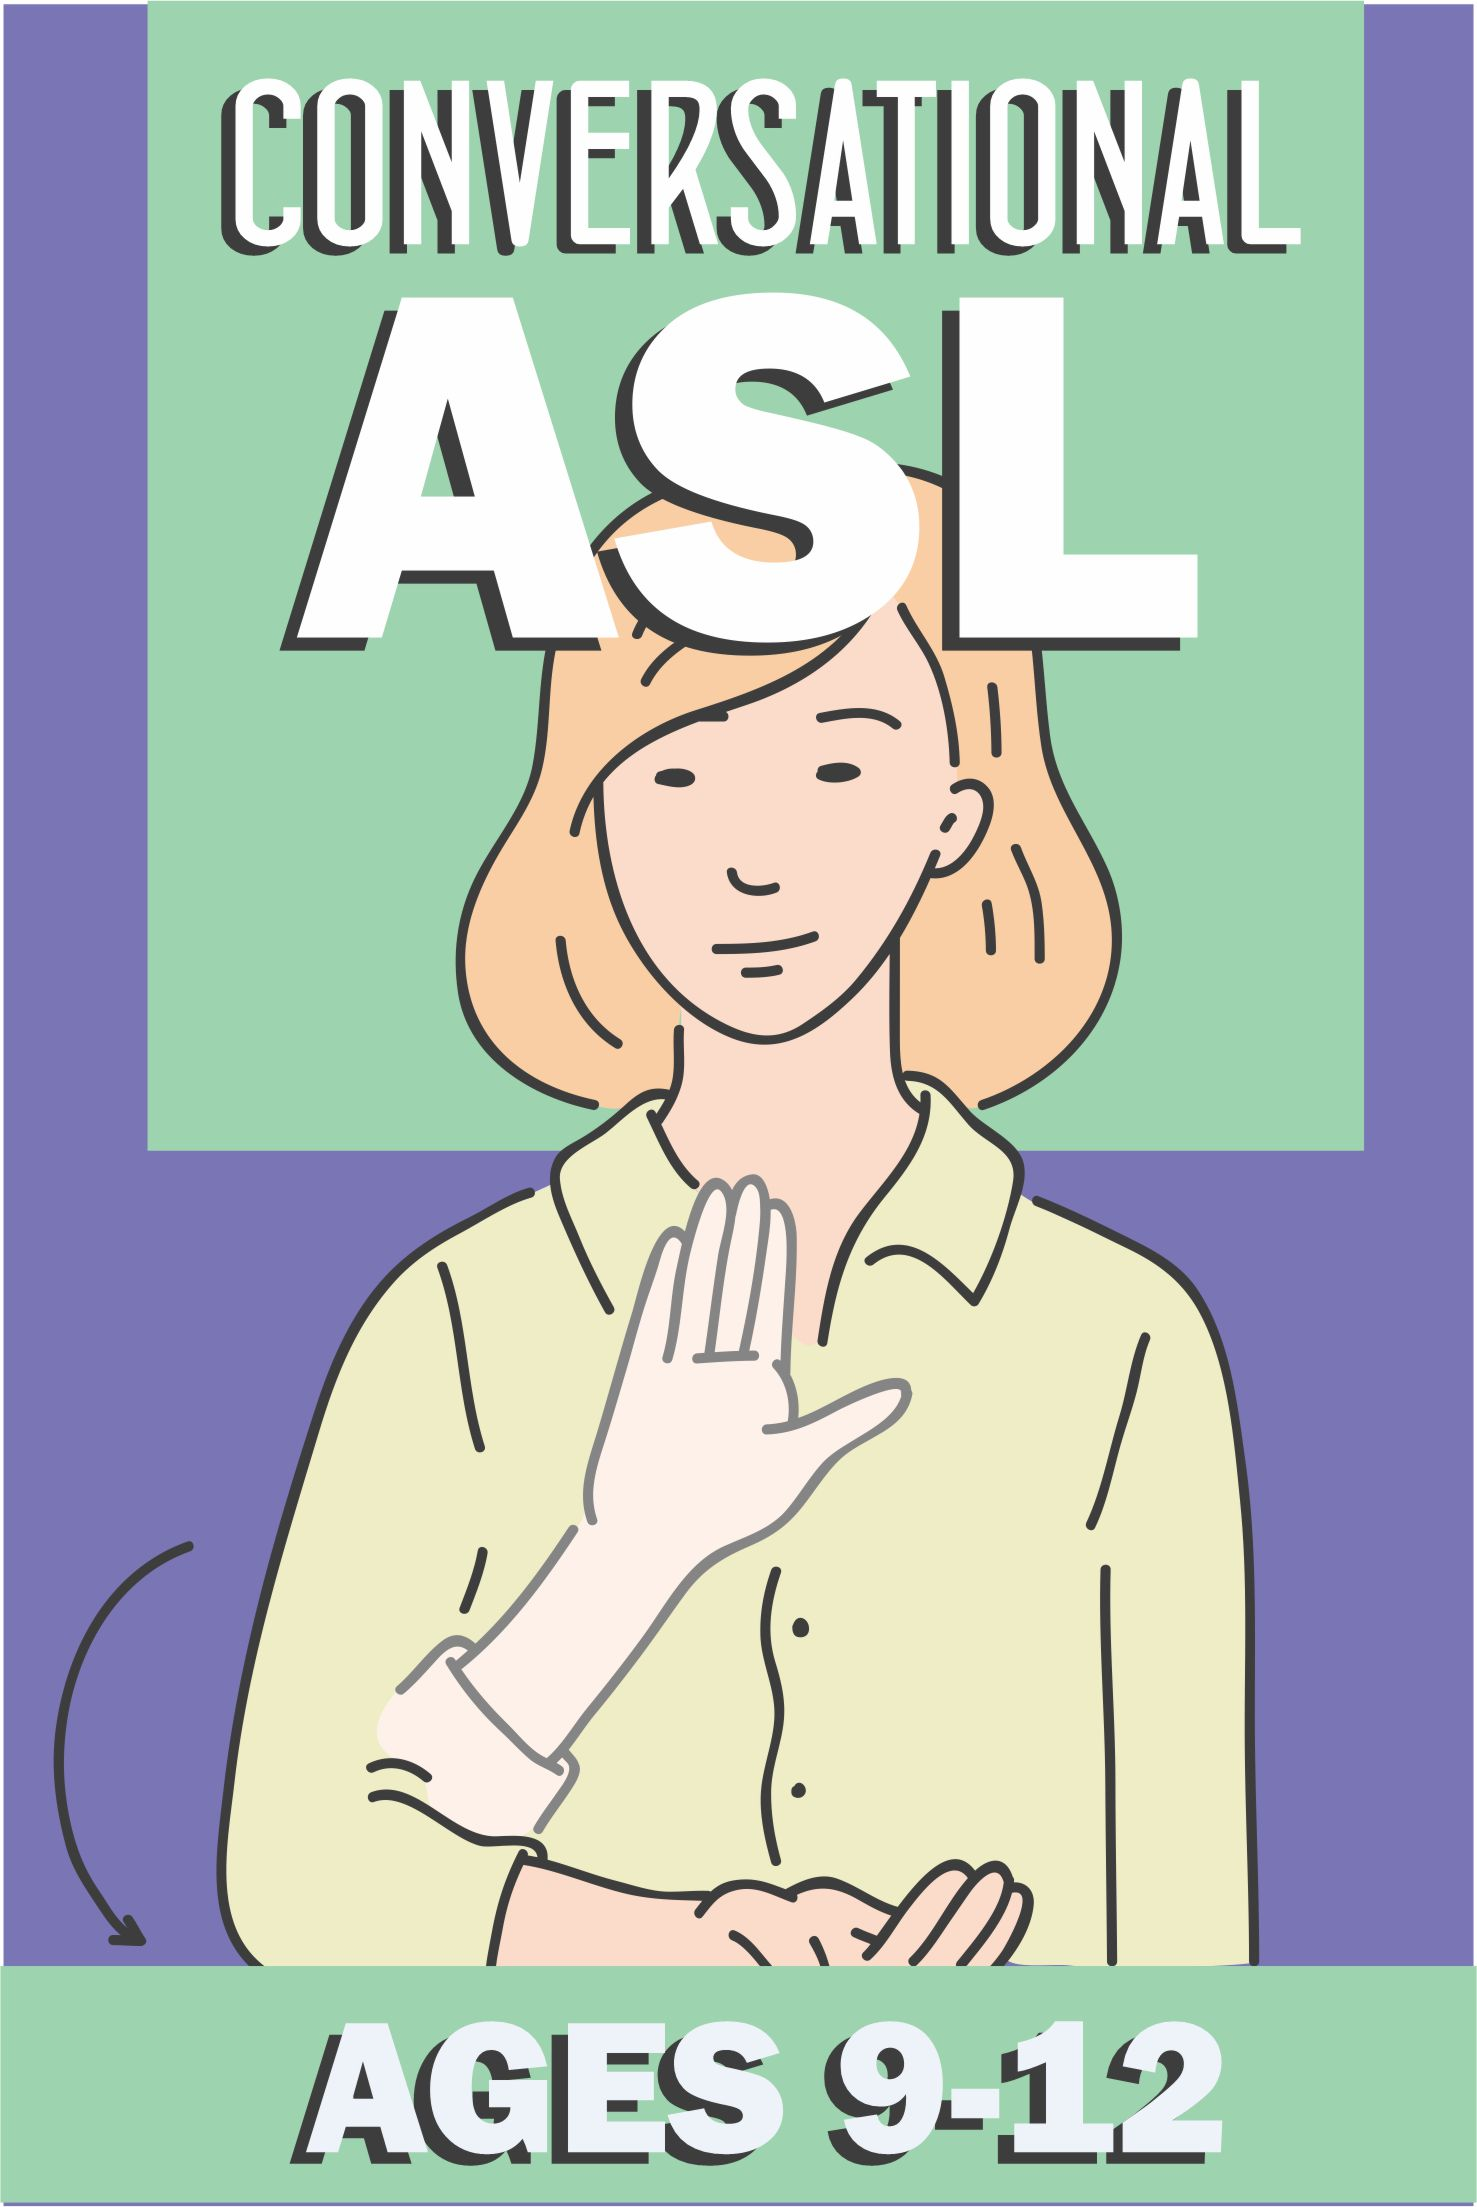 Get started with basic sign language. After this class, you will be able to greet and introduce yourself in ASL and more! #makingfriends #signlanguage #asl #virtualasl #sign #girlscouts #funclass #gsworkshop via @gsleader411